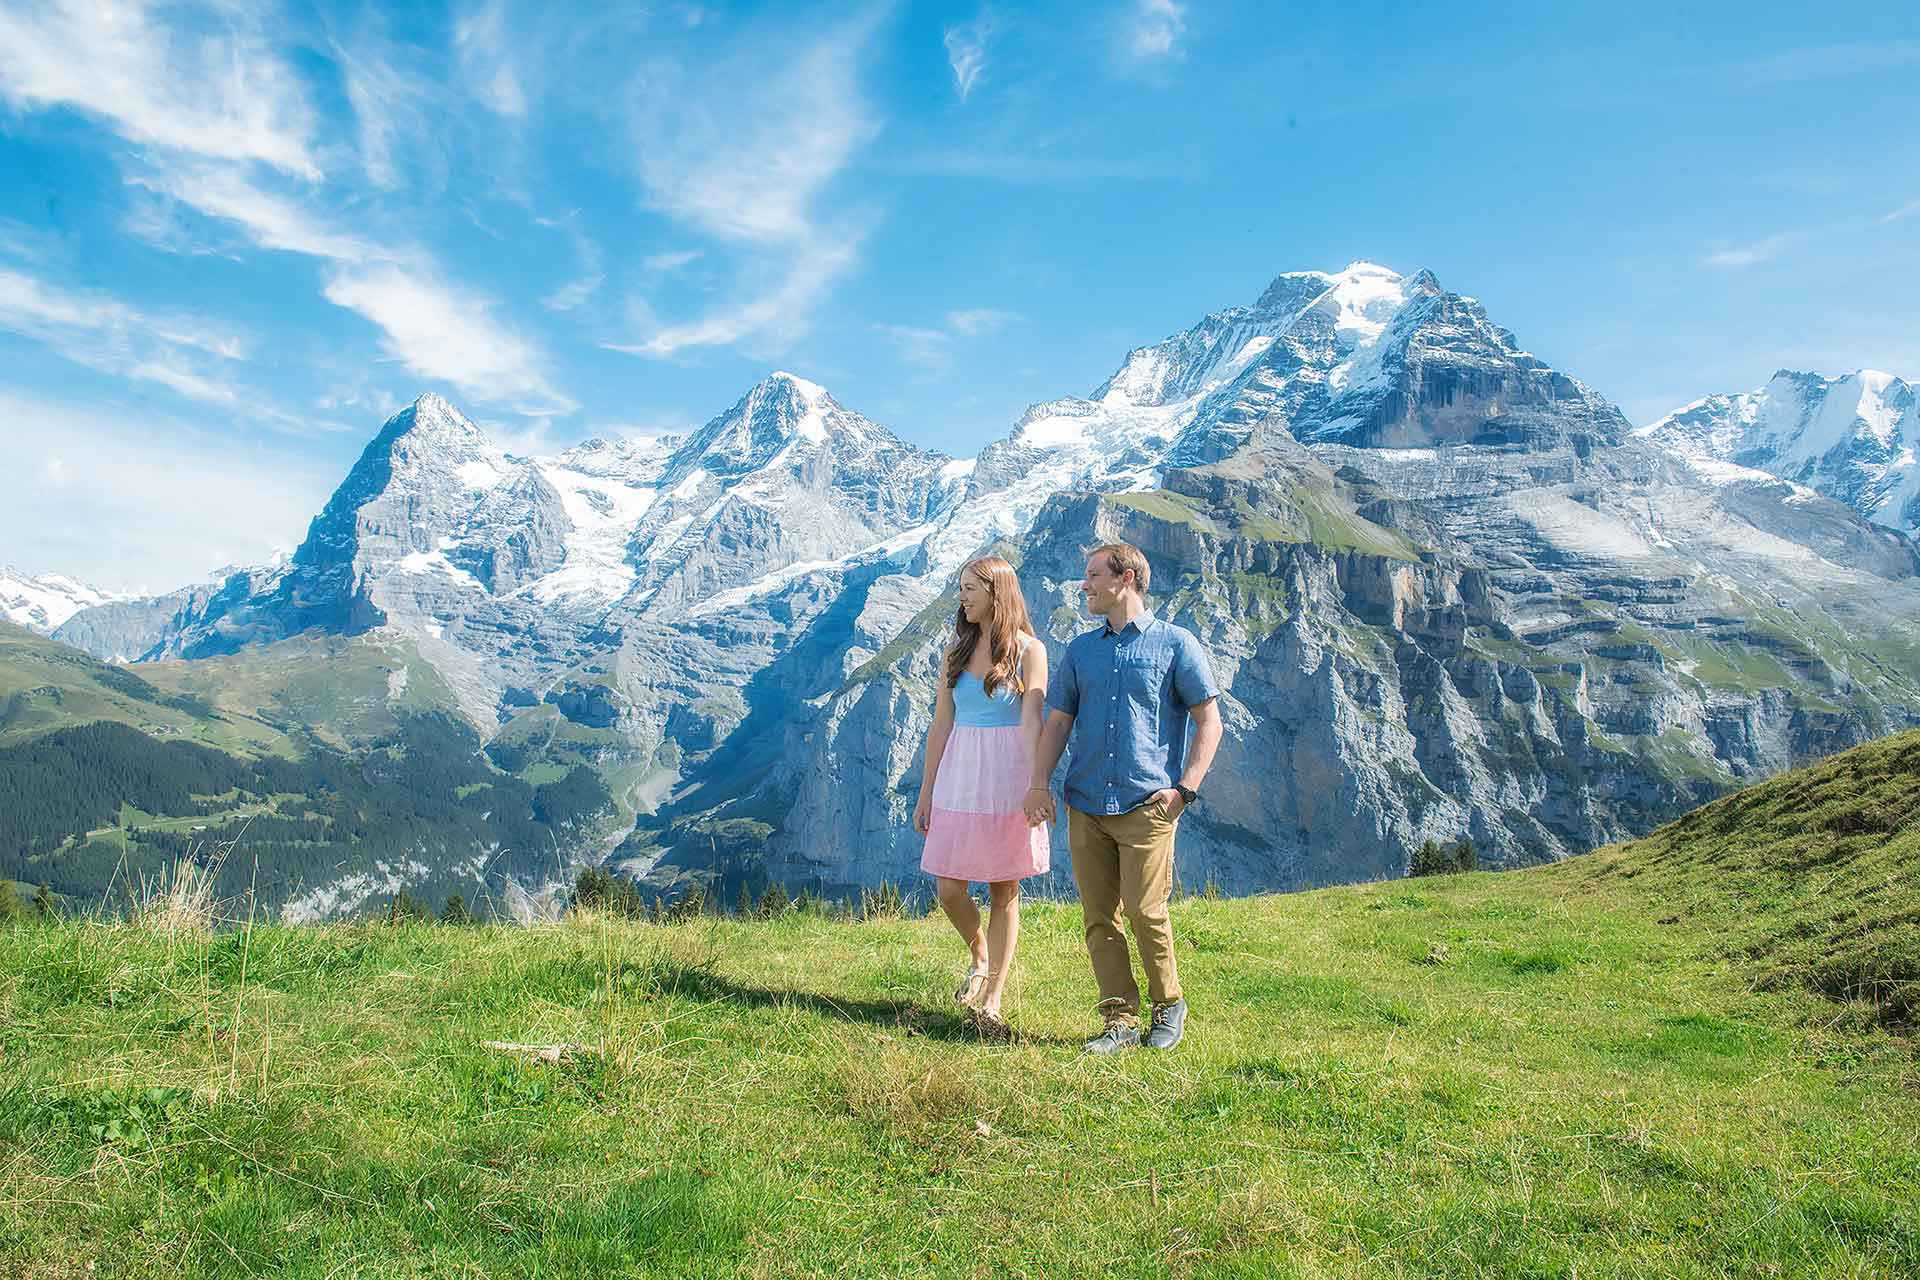 Photo shoot in the Swiss Alps